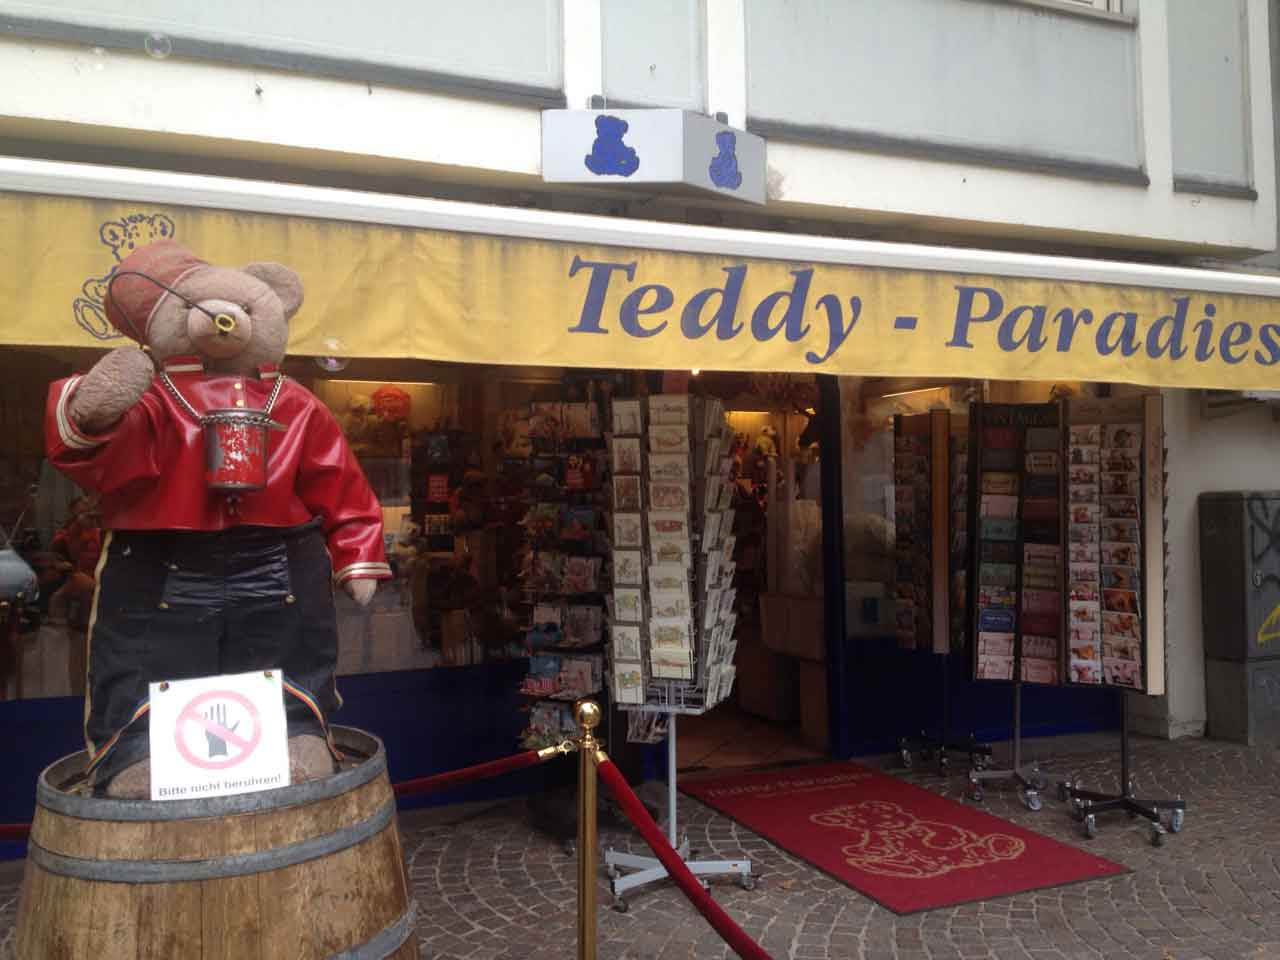 Teddy-Paradies in Frankfurt